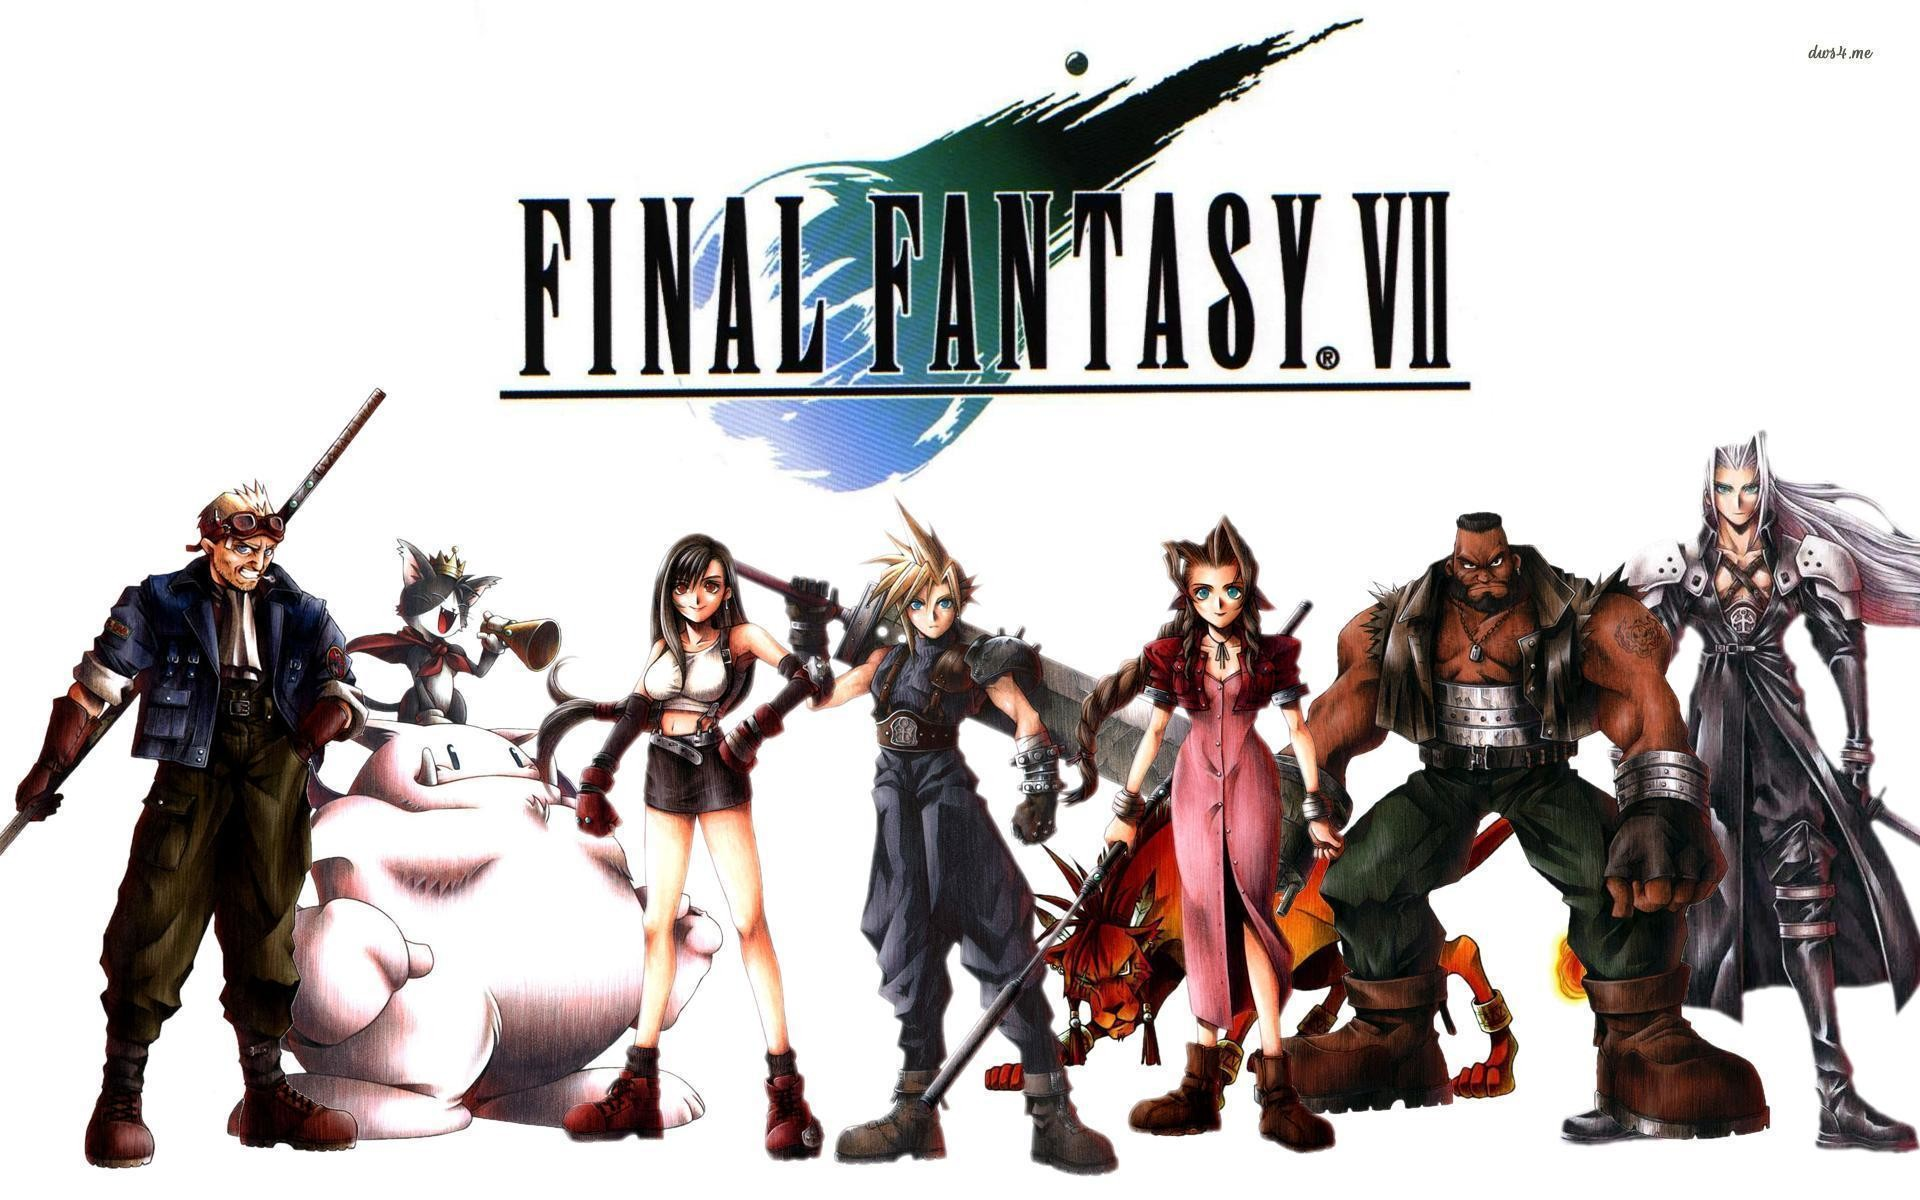 1920x1200 Final Fantasy Vii Wallpapers - Full HD wallpaper search - page 2